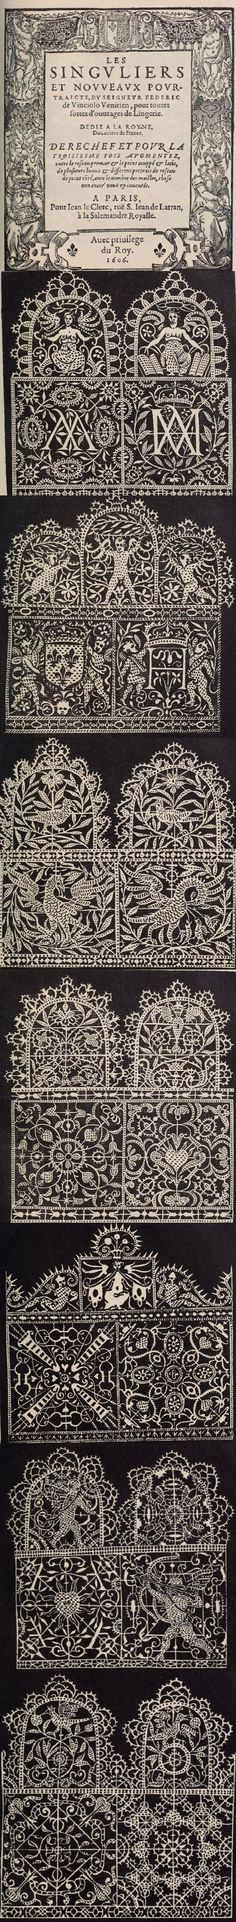 Read this Italian lace and embroidery book from 1909. Reticello designs.